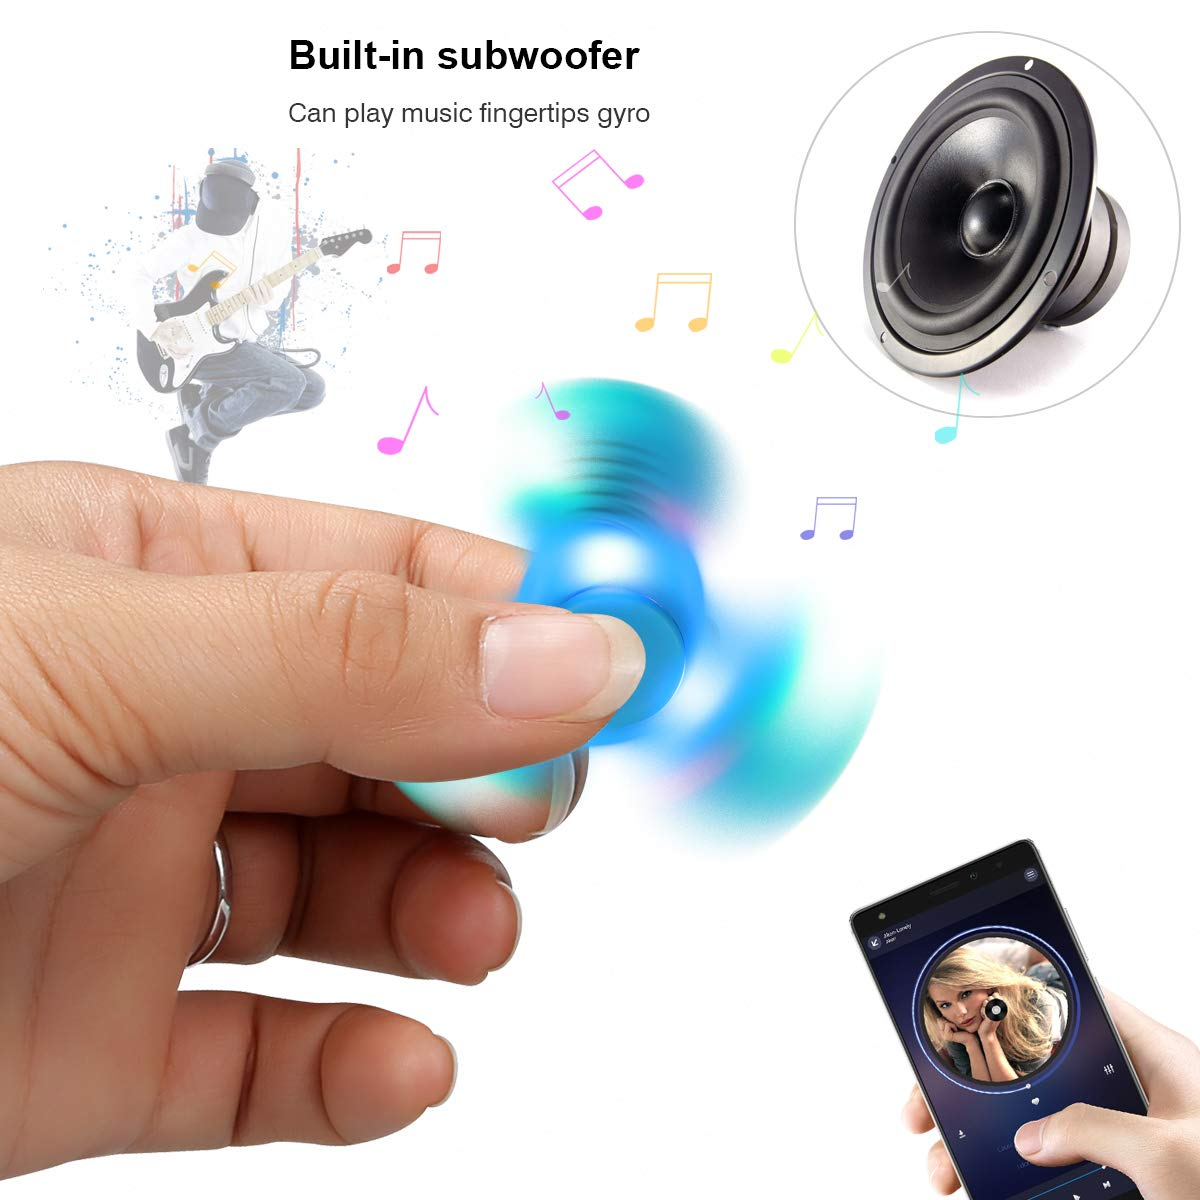 Autism Kids Adult Toy Gifts Childrens Wireless Speakers Music Fidget Spinner Toy Reducer EDC Hand Spinner for ADHD Kivors Speaker Fidget Spinner Anxiety Red